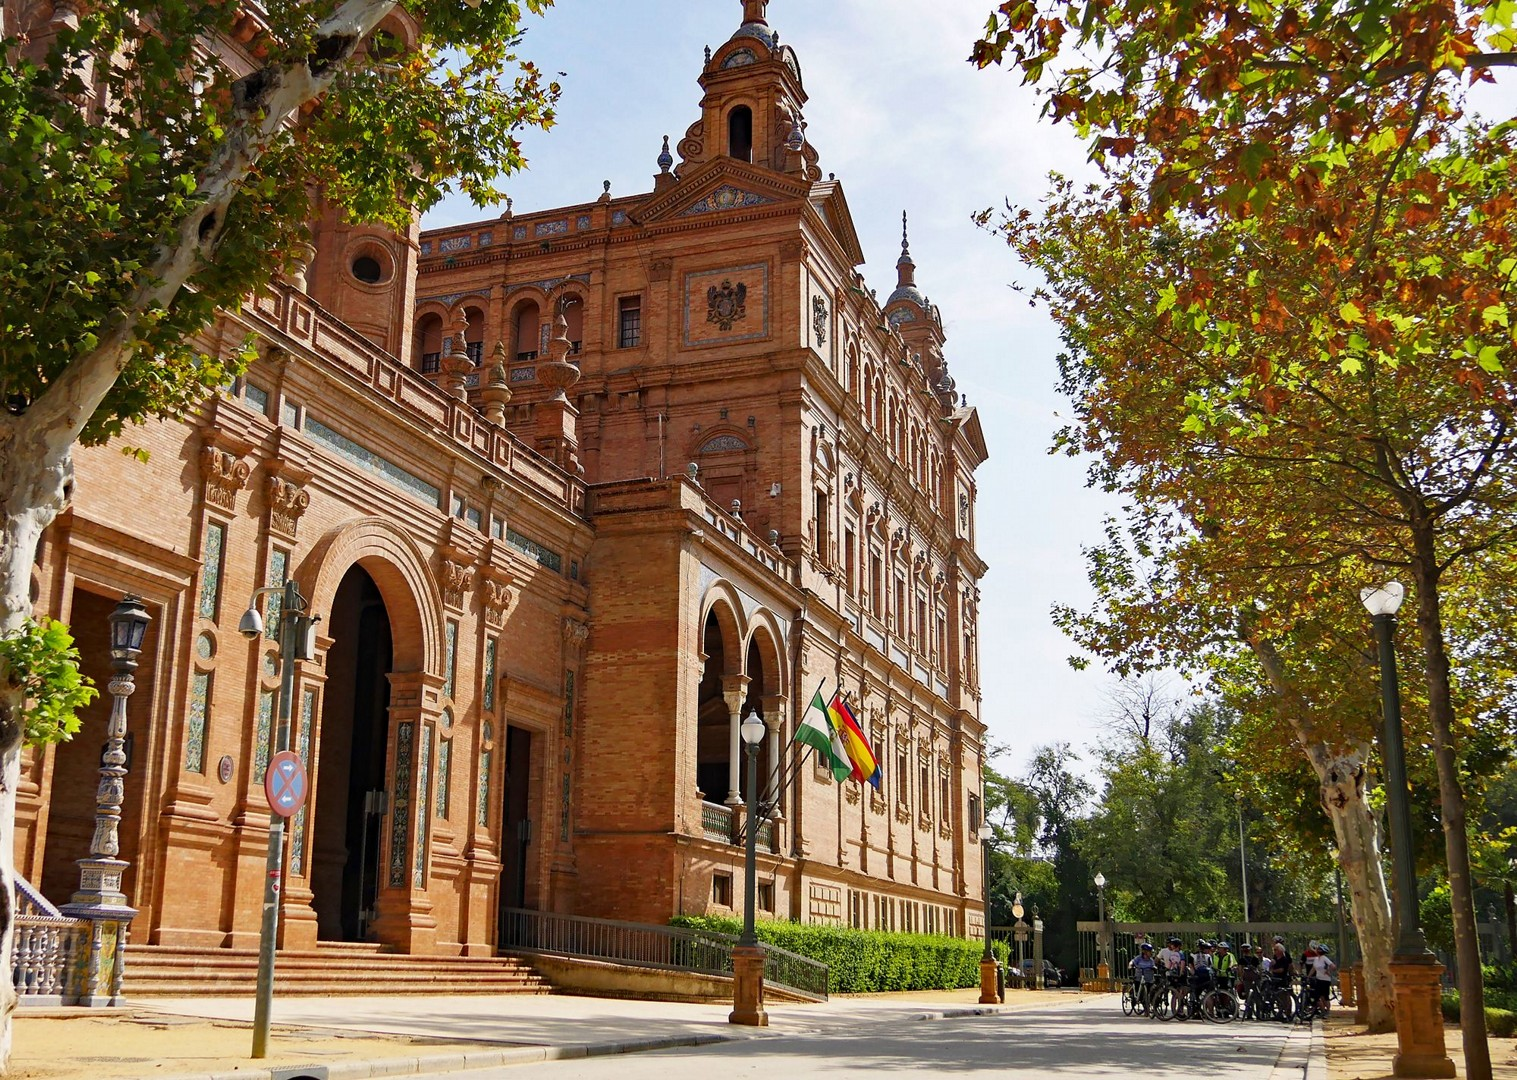 southern-spain-granada-to-seville-guided-leisure-cycling-holiday.jpg - Southern Spain - Granada to Seville - Guided Leisure Cycling Holiday - Leisure Cycling